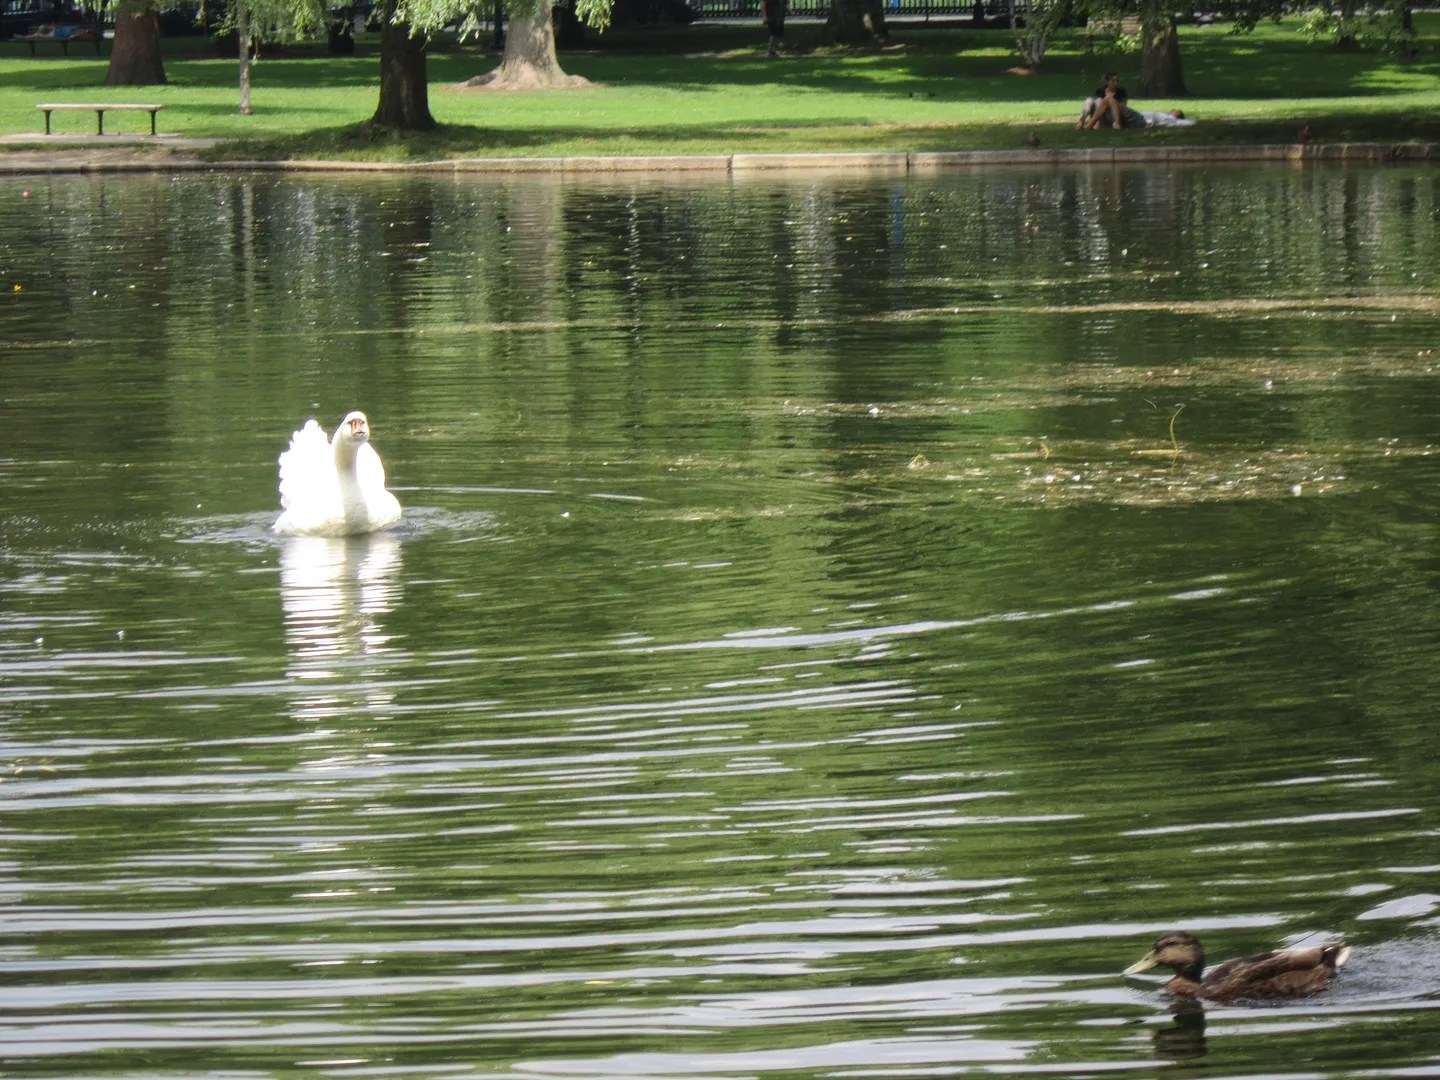 swan, duck, Boston Public Garden